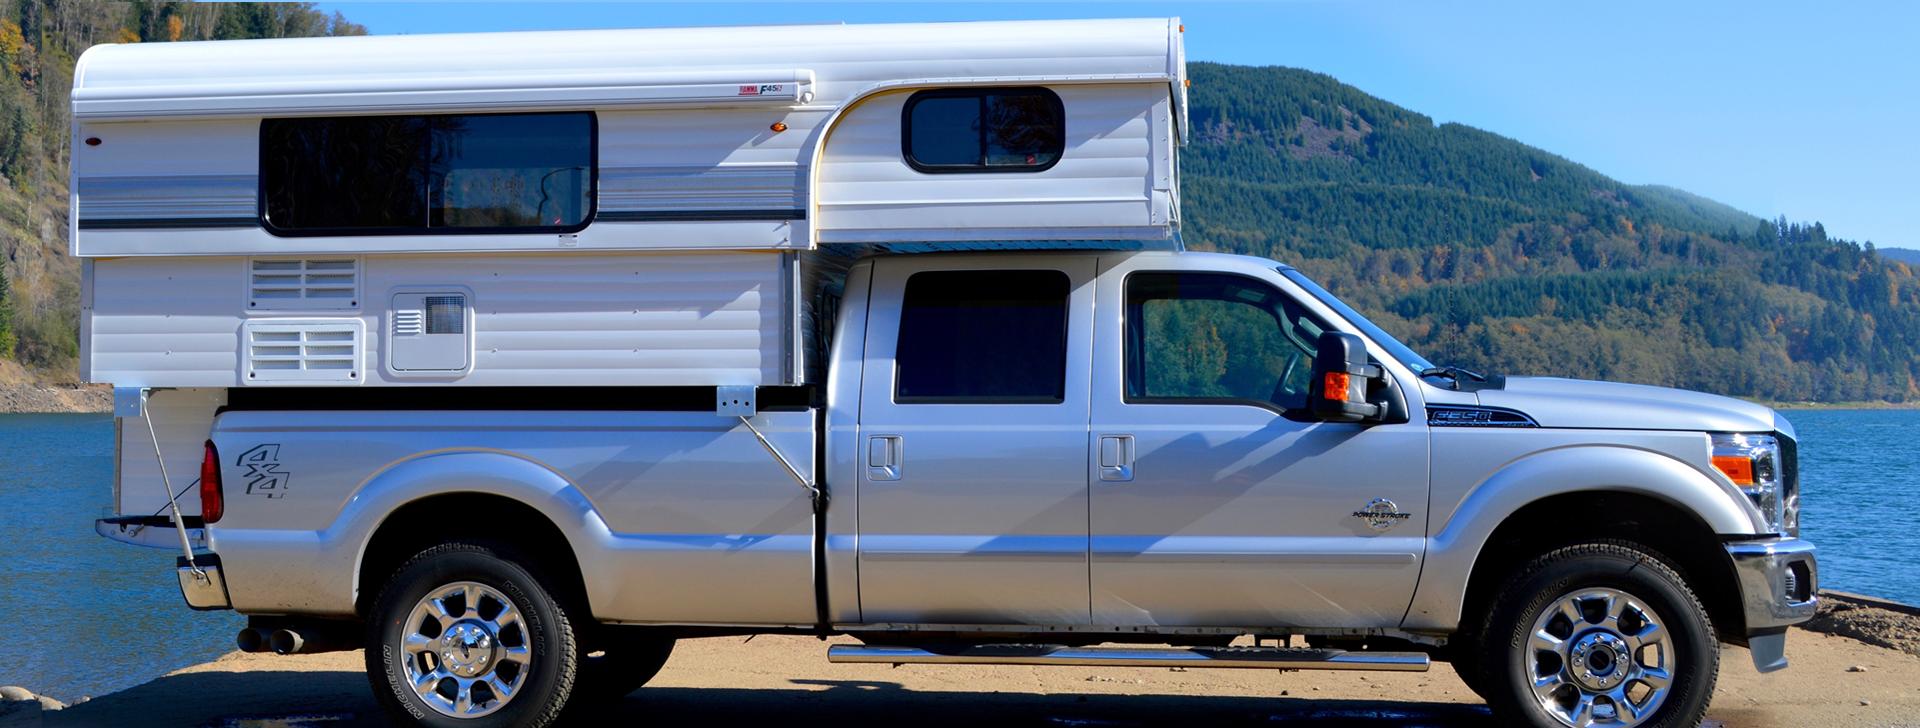 5 Best Small Truck Campers Best In Travel 2018